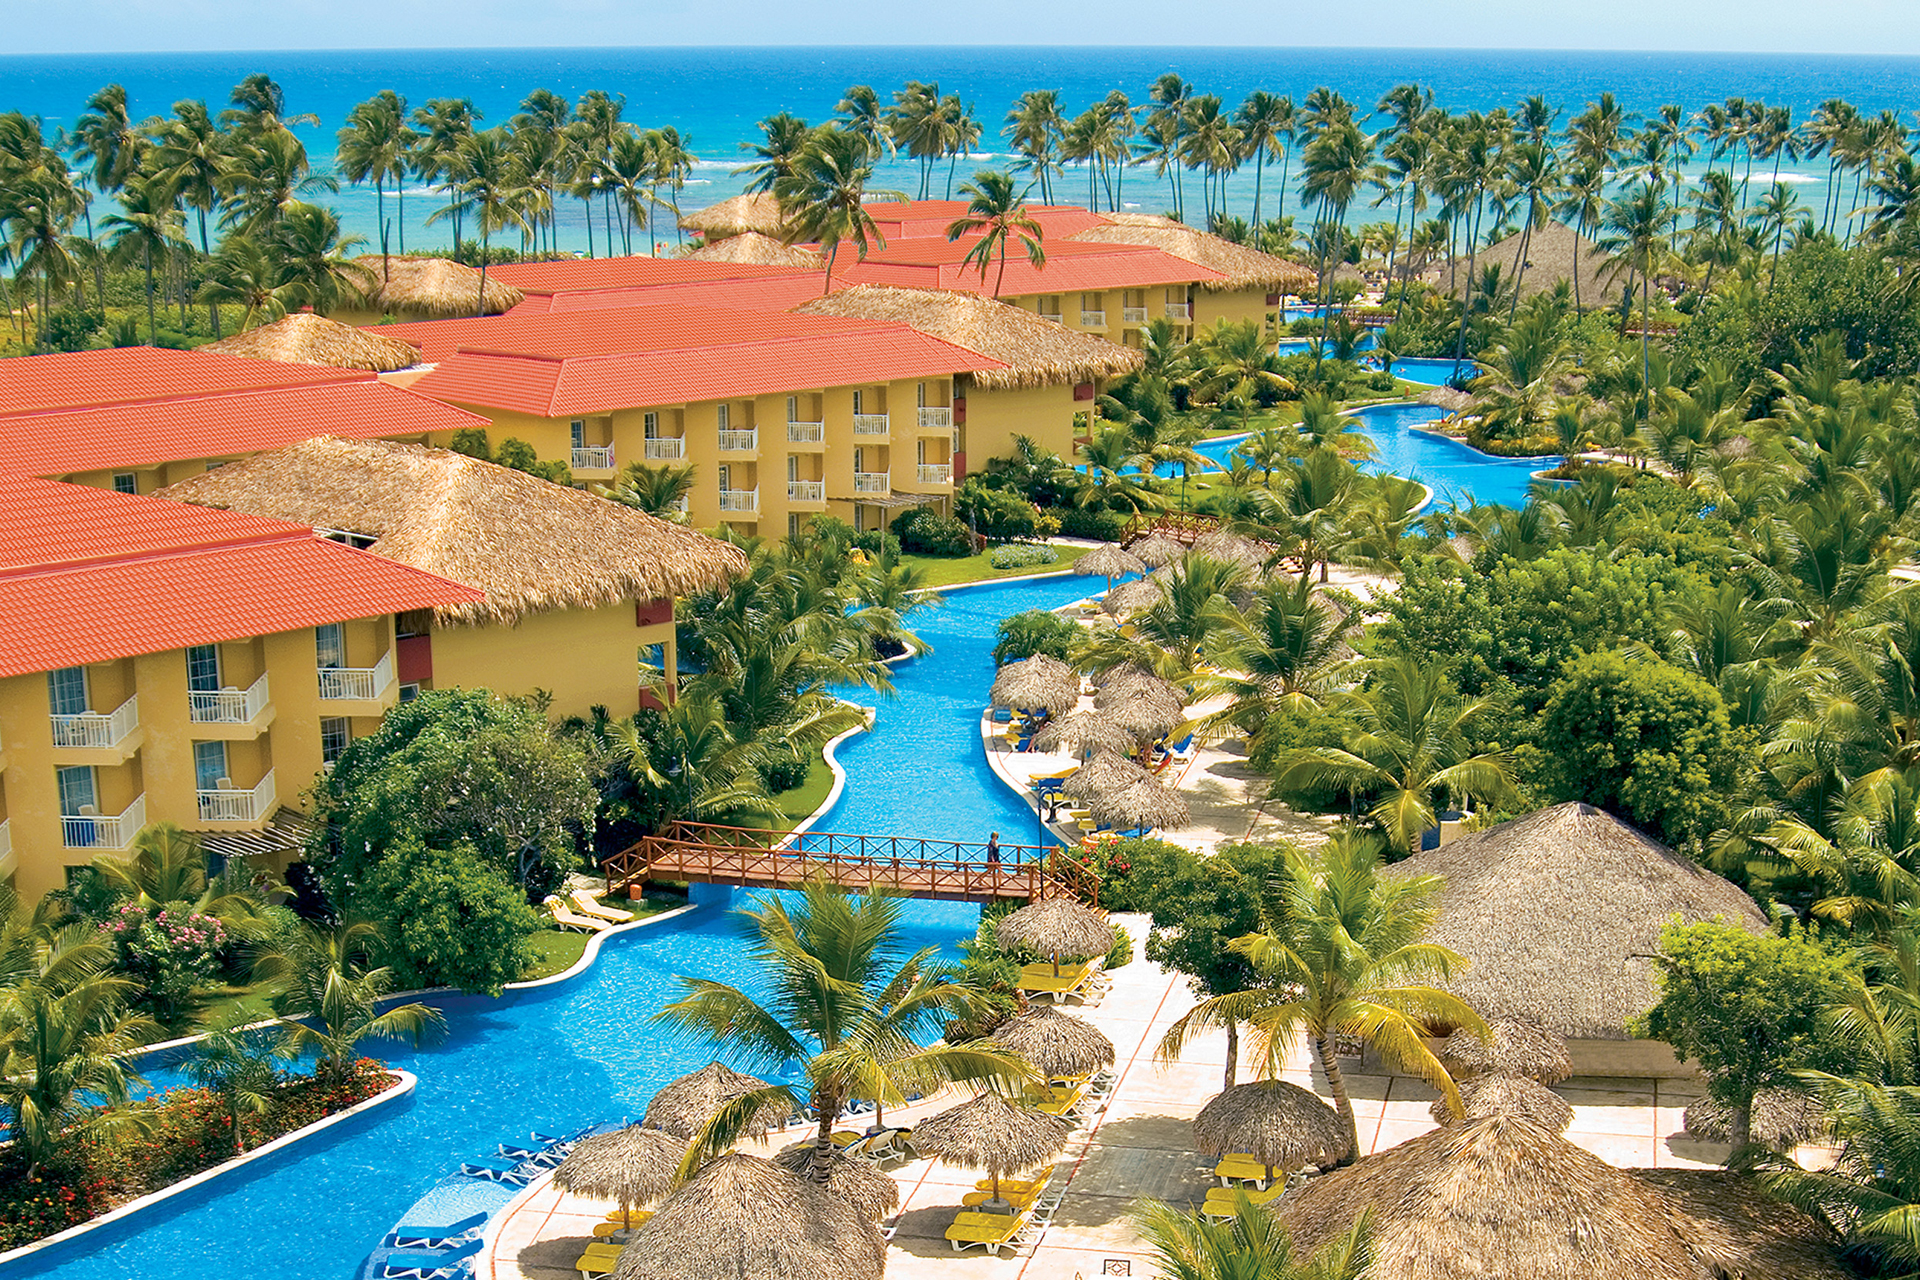 Dreams Punta Cana Resort Want To Know More Call Our Travel Agents At 727 391 0900